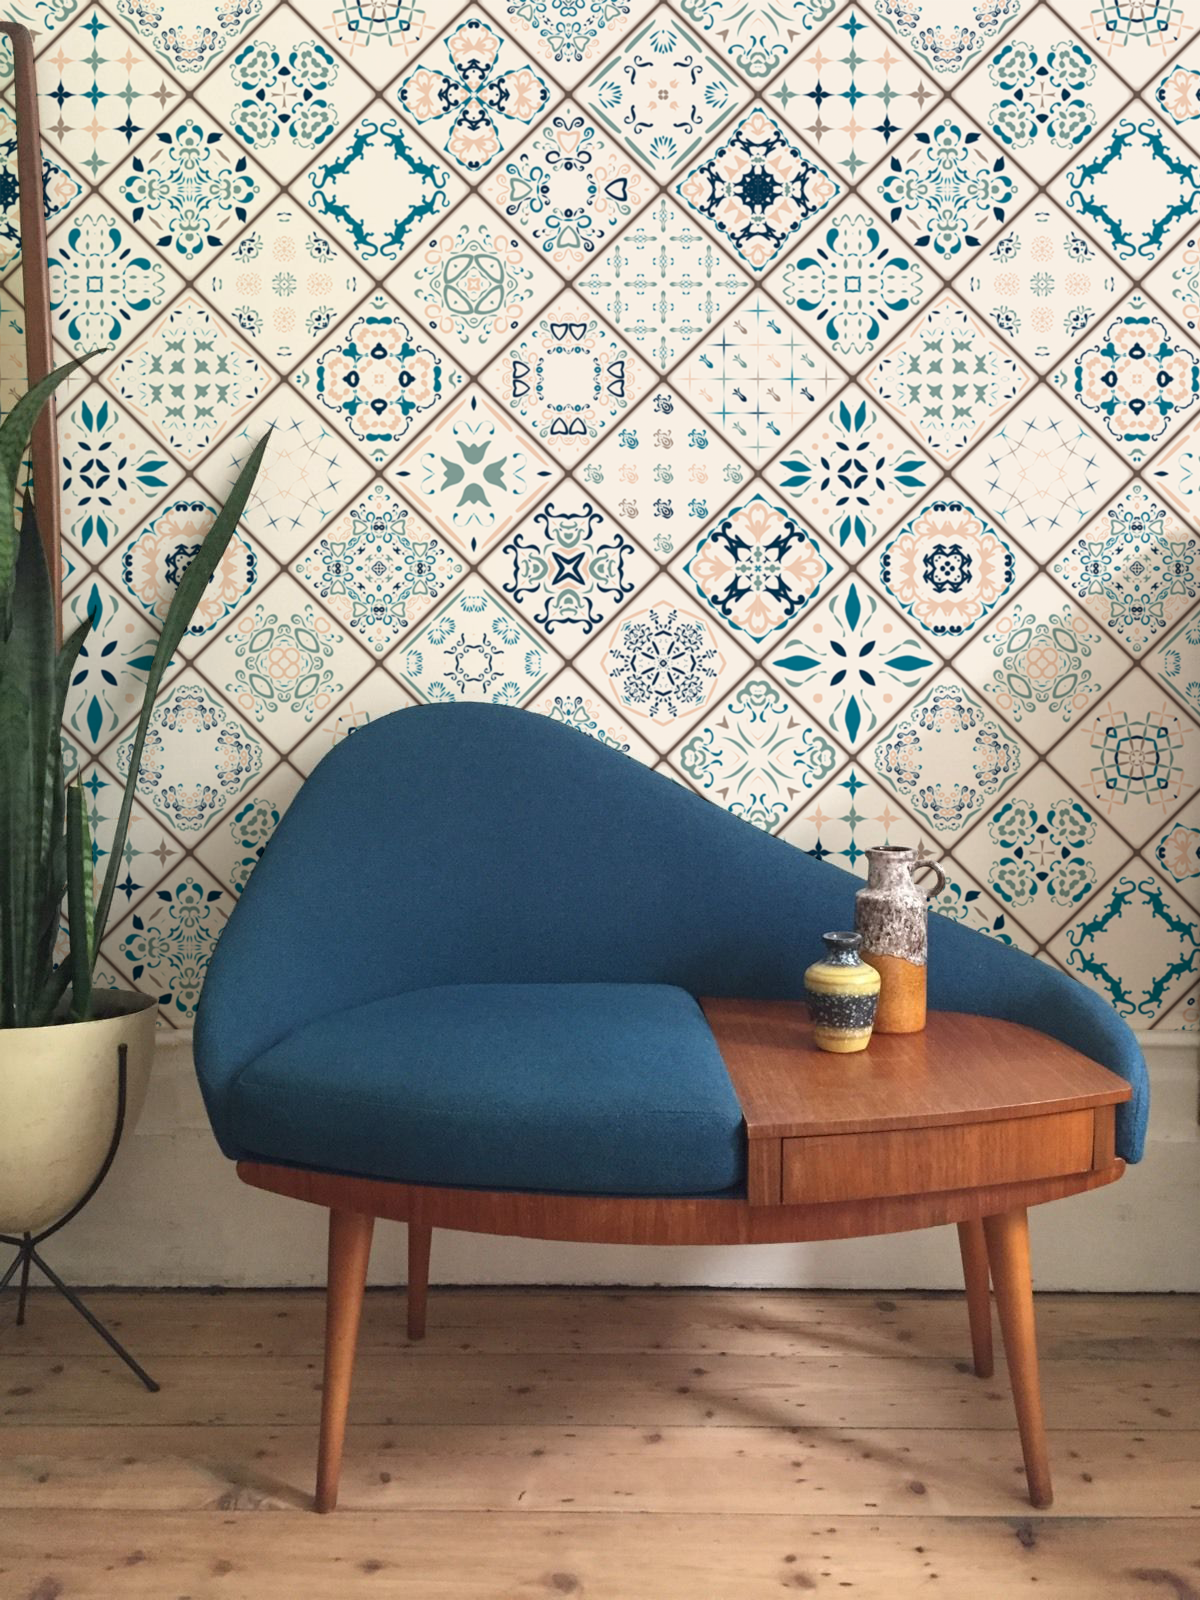 Although It Looks Like Real Tiles Tiles Composition Is A Pattern On A Removable Wallpaper Just Peel Stick And Living Room Tiles Turkish Decor House Interior